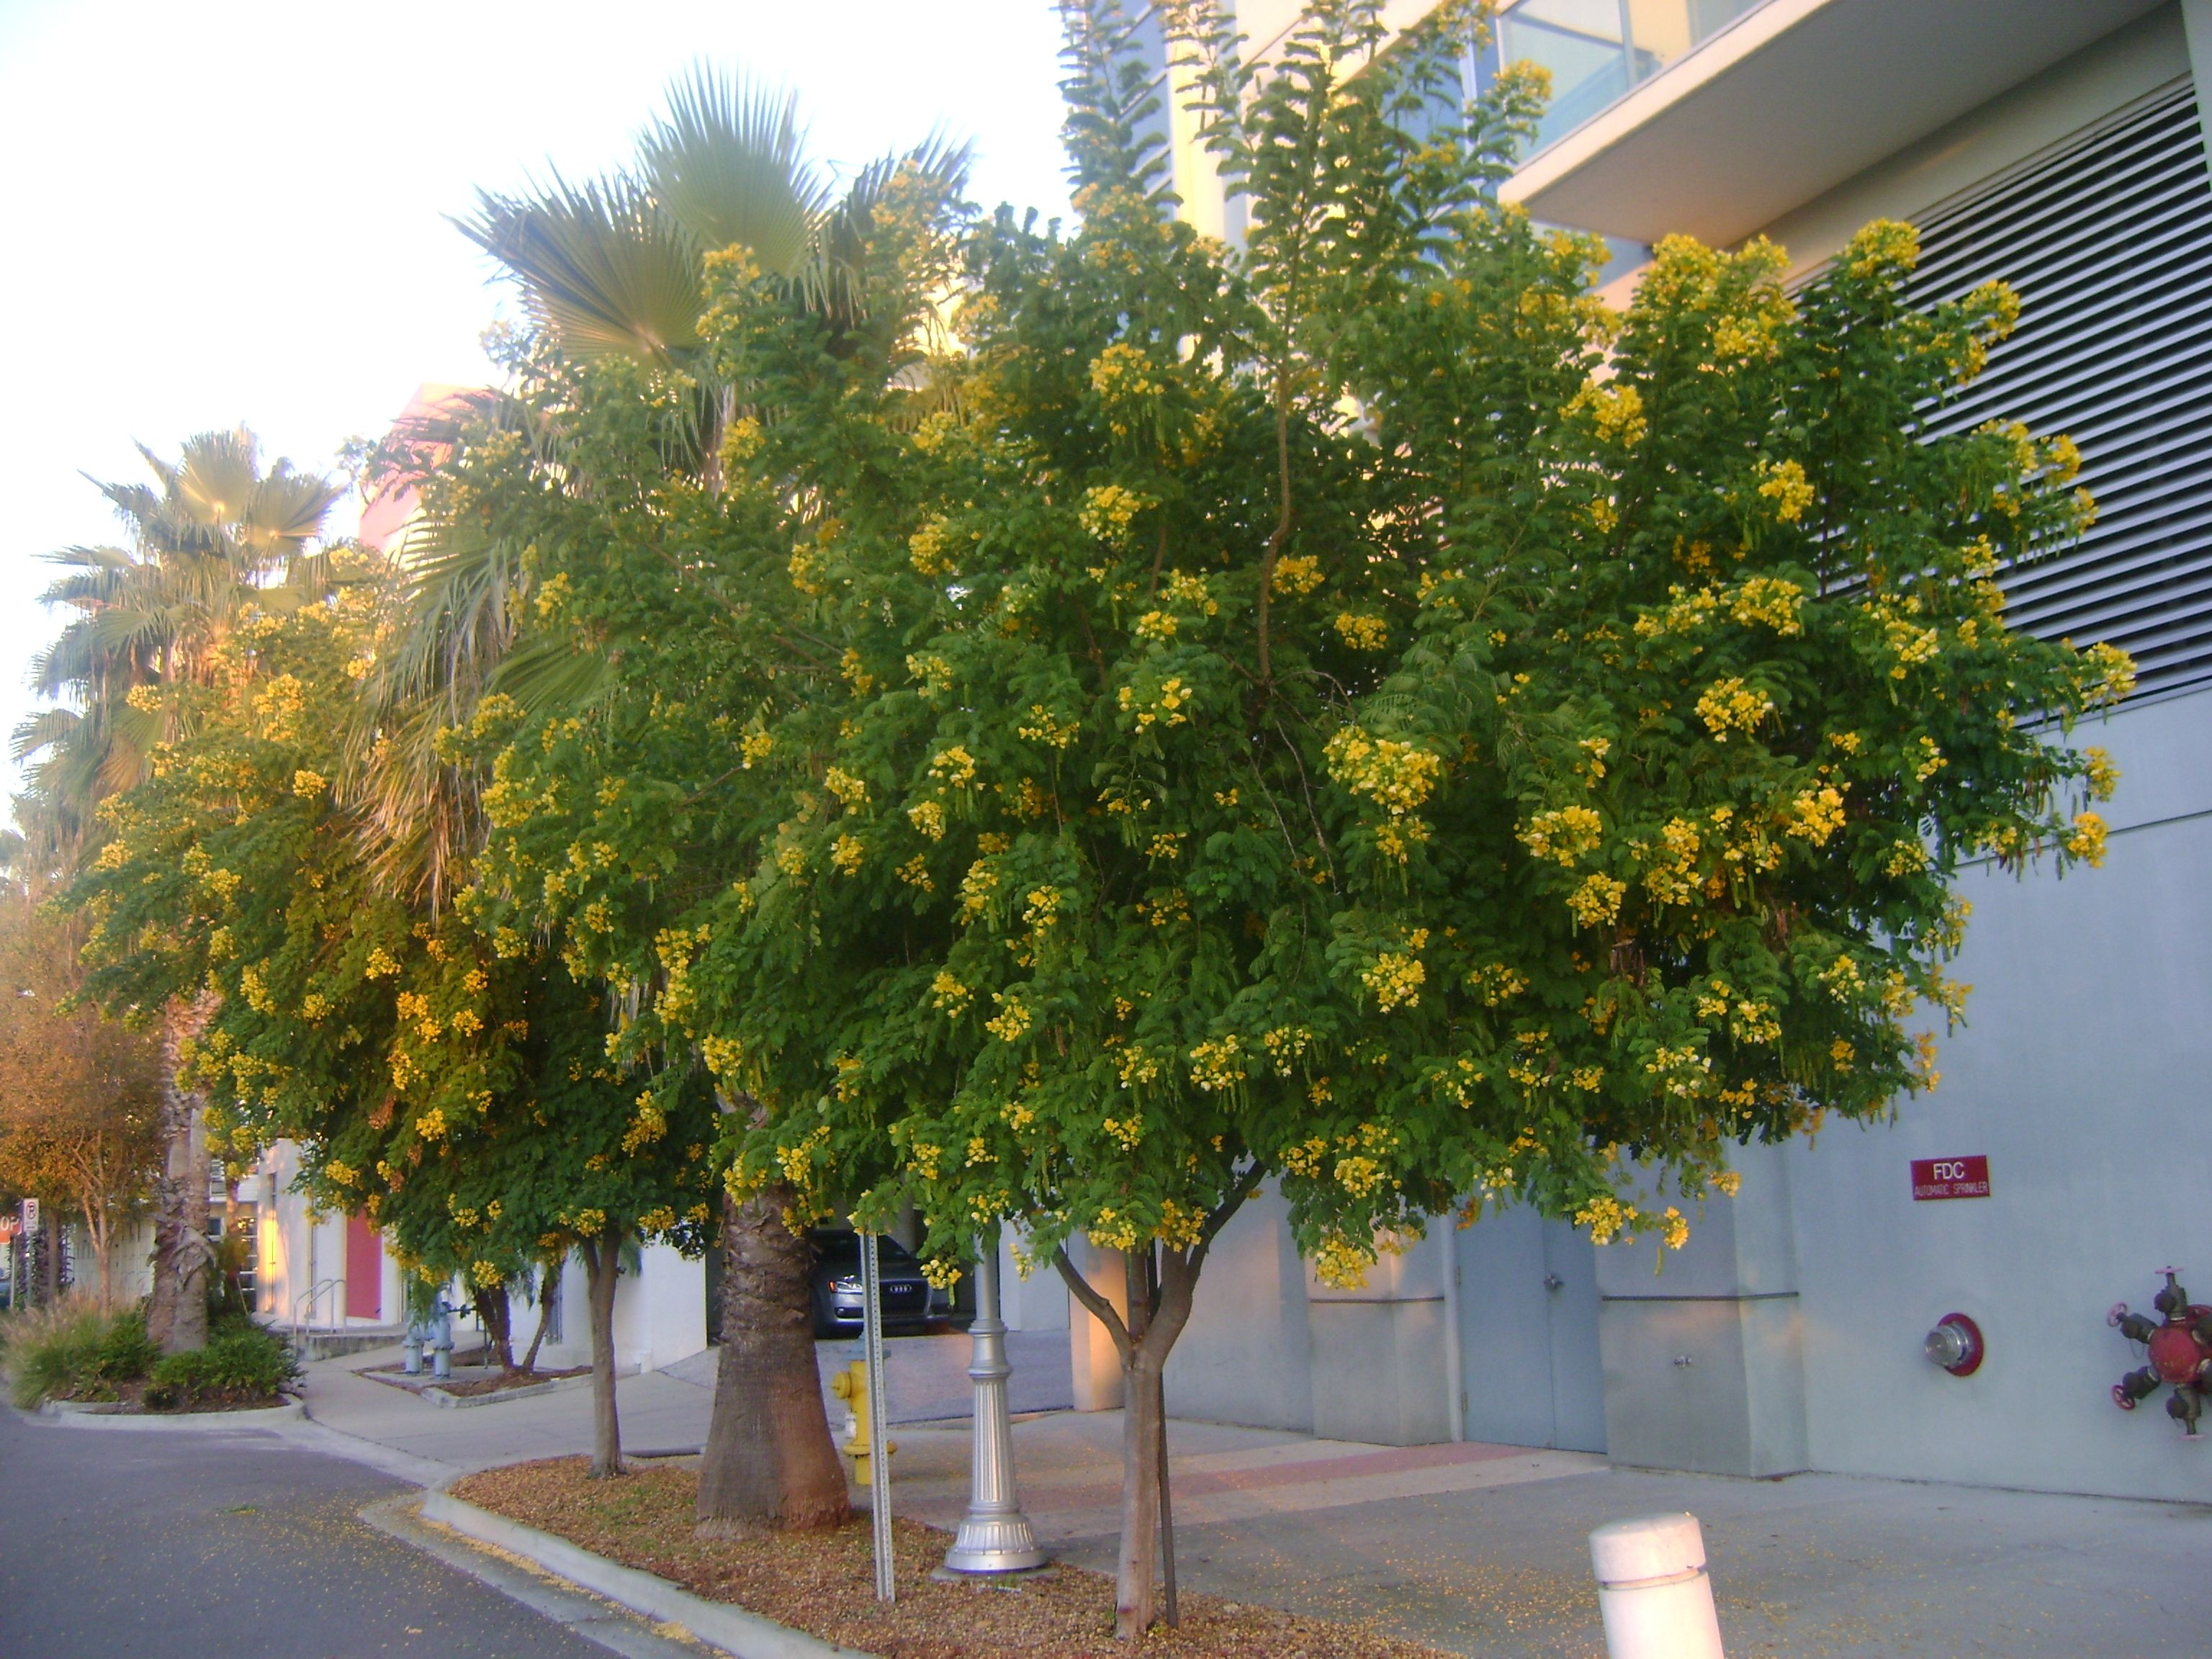 The fast growing Cassia tree can eventually reach 40 feet in